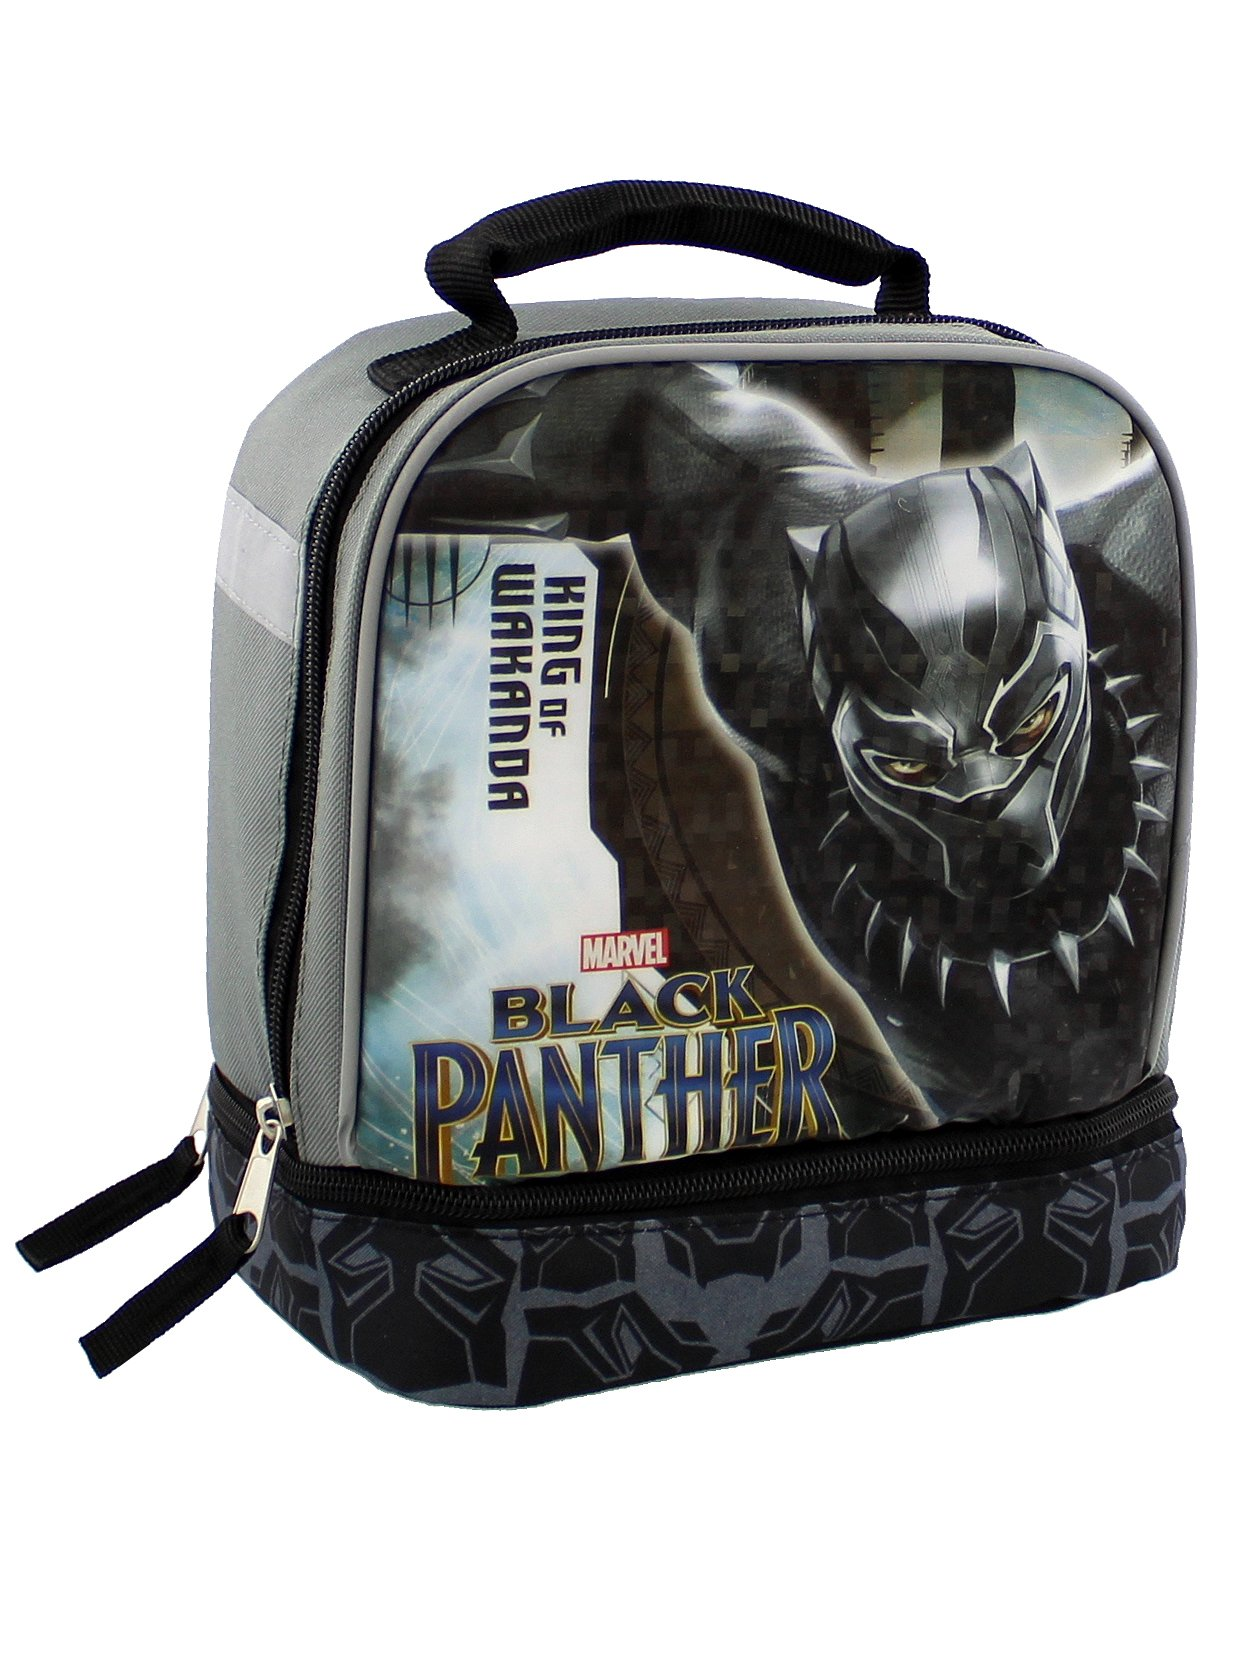 Black Panther Boy's Dual Compartment Soft Lunch Box (Black/Grey)